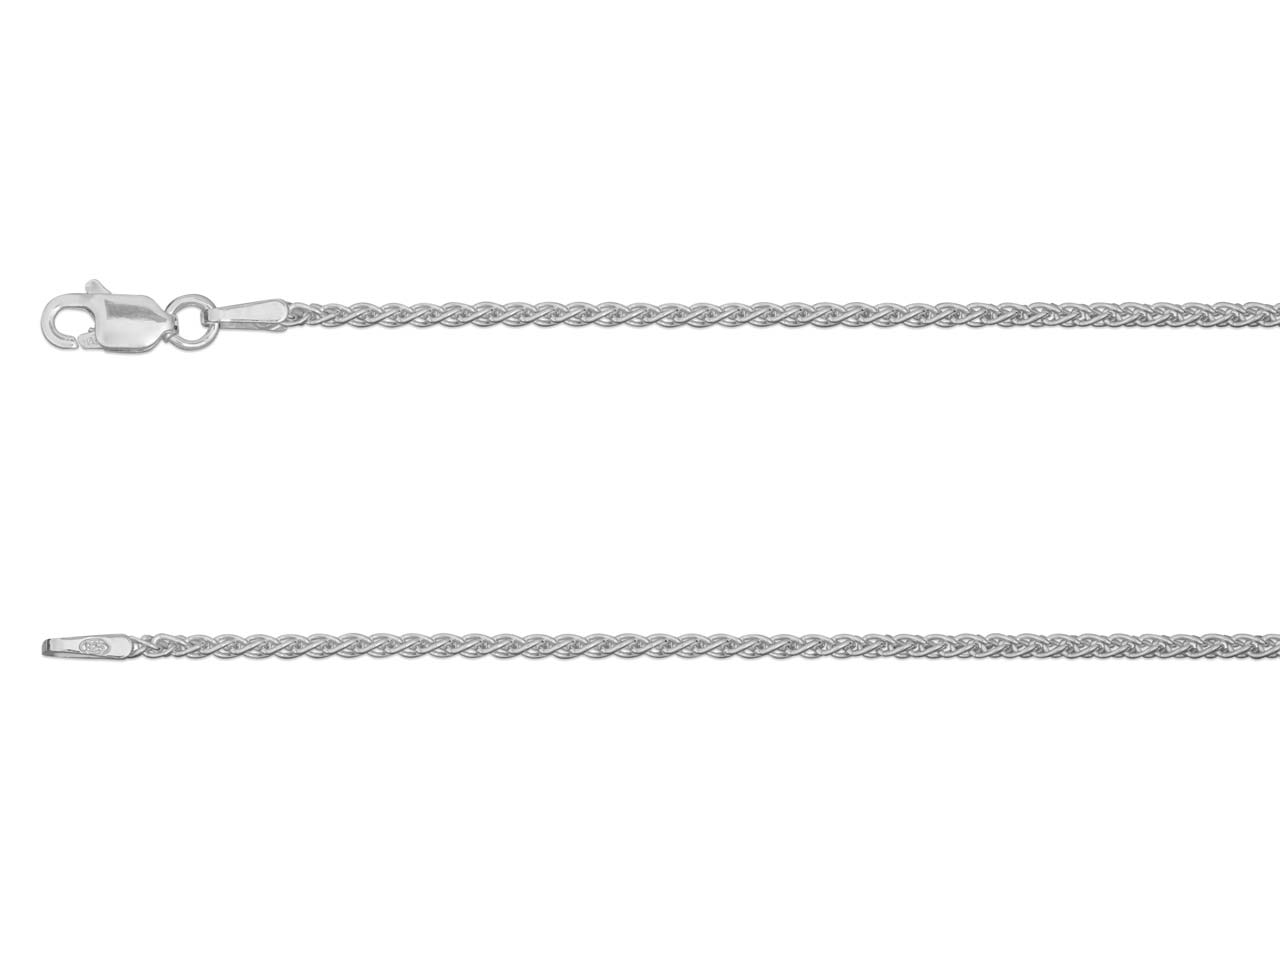 Chaine Spiga 1,50 mm, Argent sterling, 40 cm